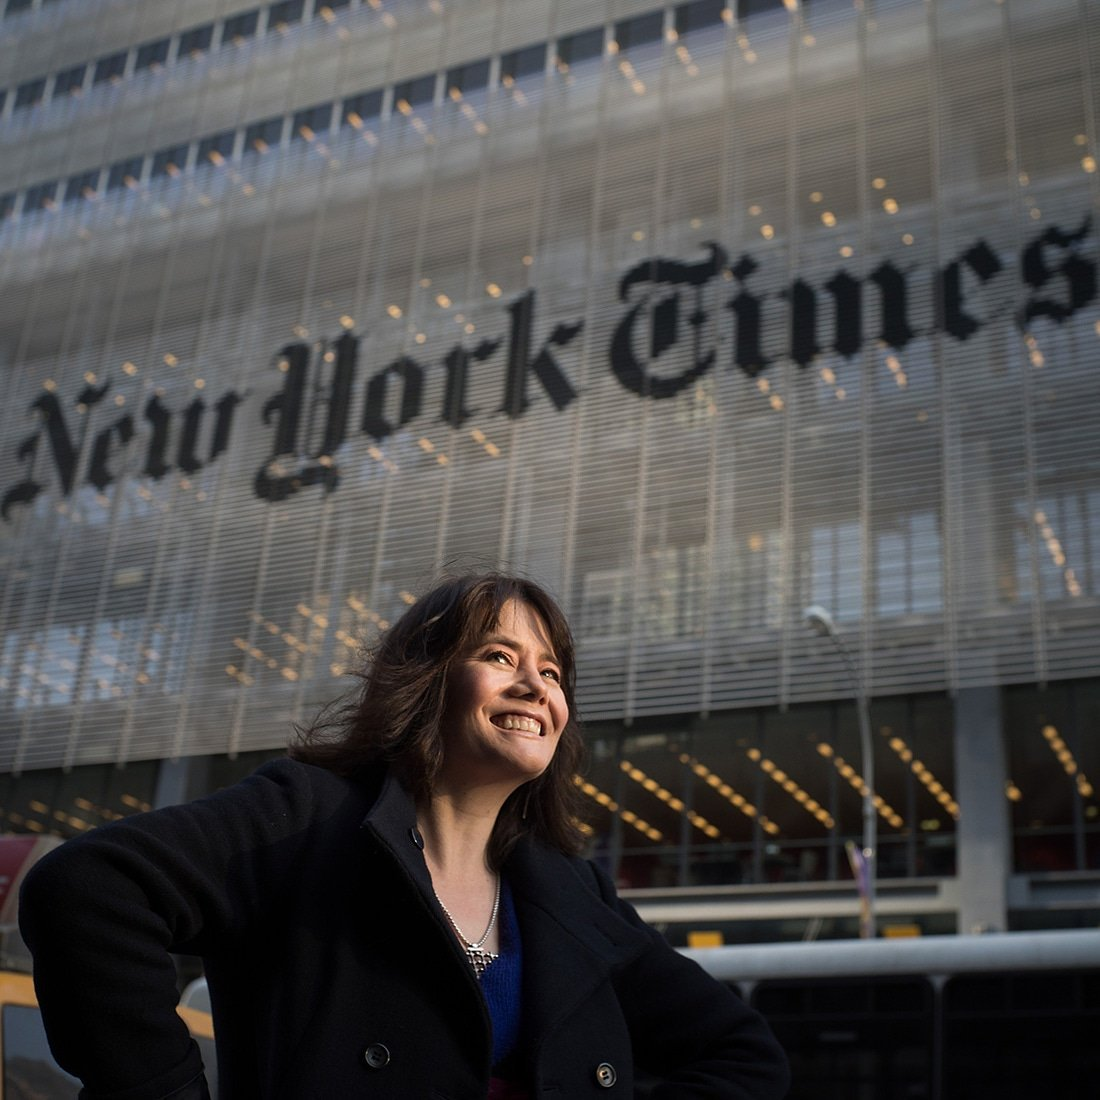 So... BIG NEWS: I'm the new #52places traveler for the New York Times! Leaving for #NewOrleans in a week in a half. Send packing tips! Join me here and on IG at @AlphaJada! My @NYMag family, you know how much I love you and will miss you. ❤️🎉🛫 https://t.co/TromiNI9md